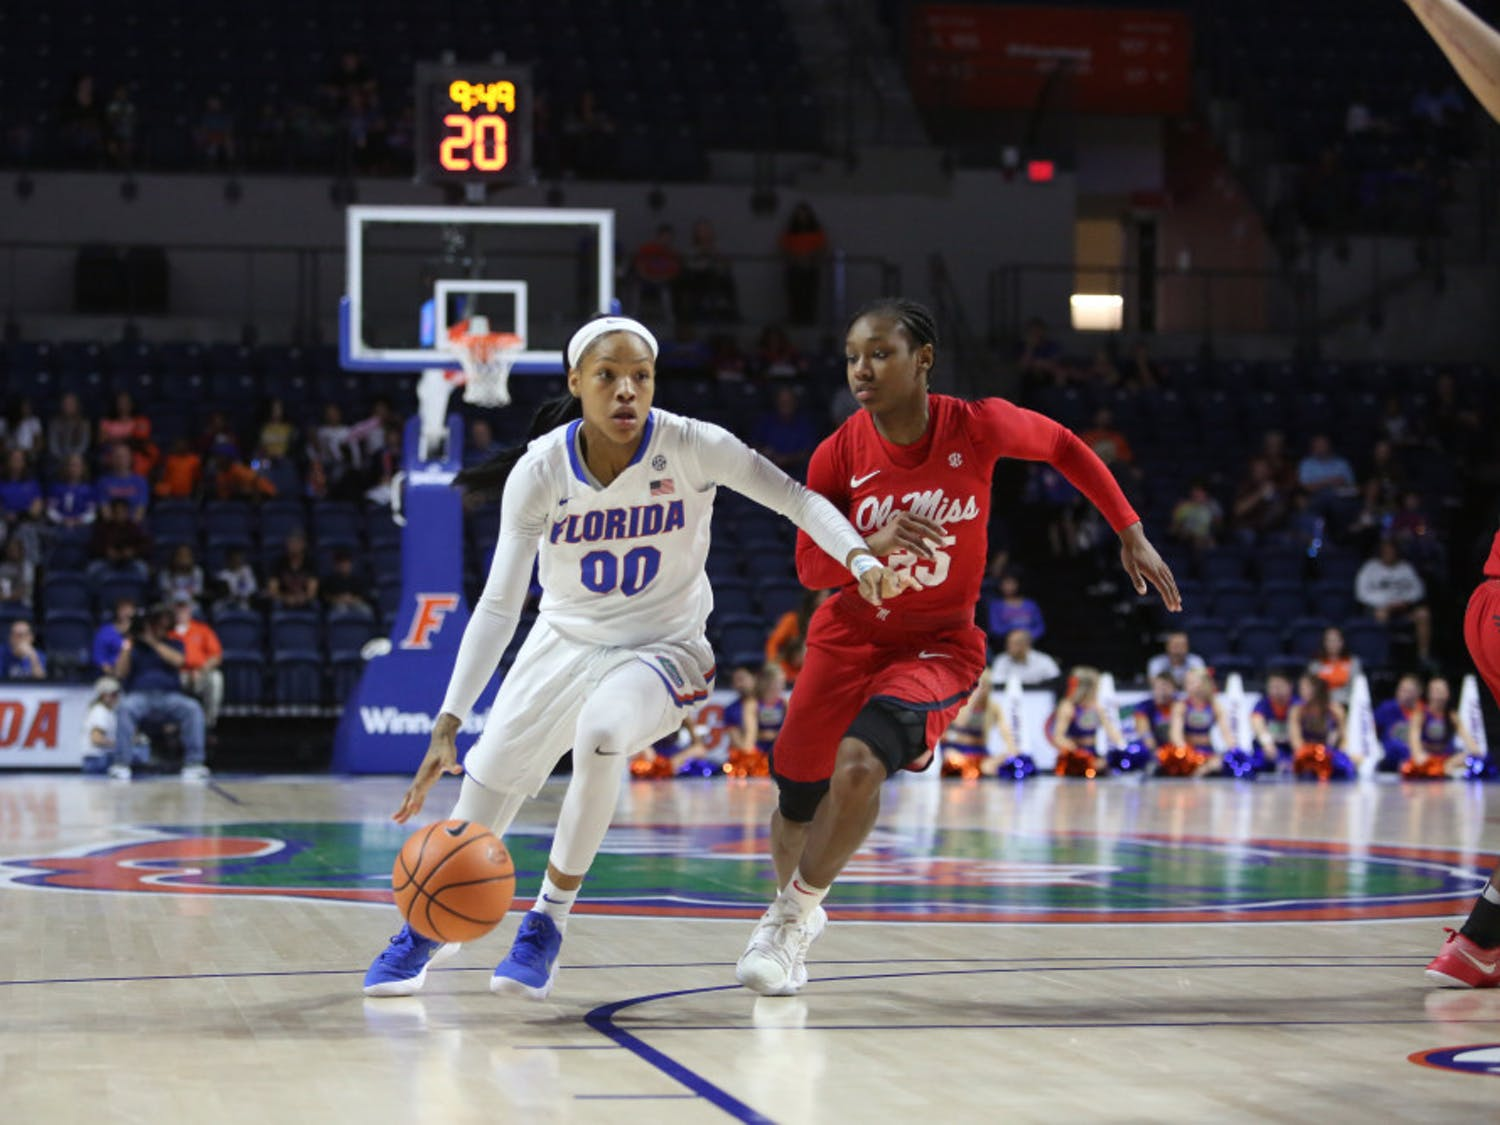 Florida guard Delicia Washington turned in a season-high 23 points Monday night in a losing effort against No. 15 Missouri.